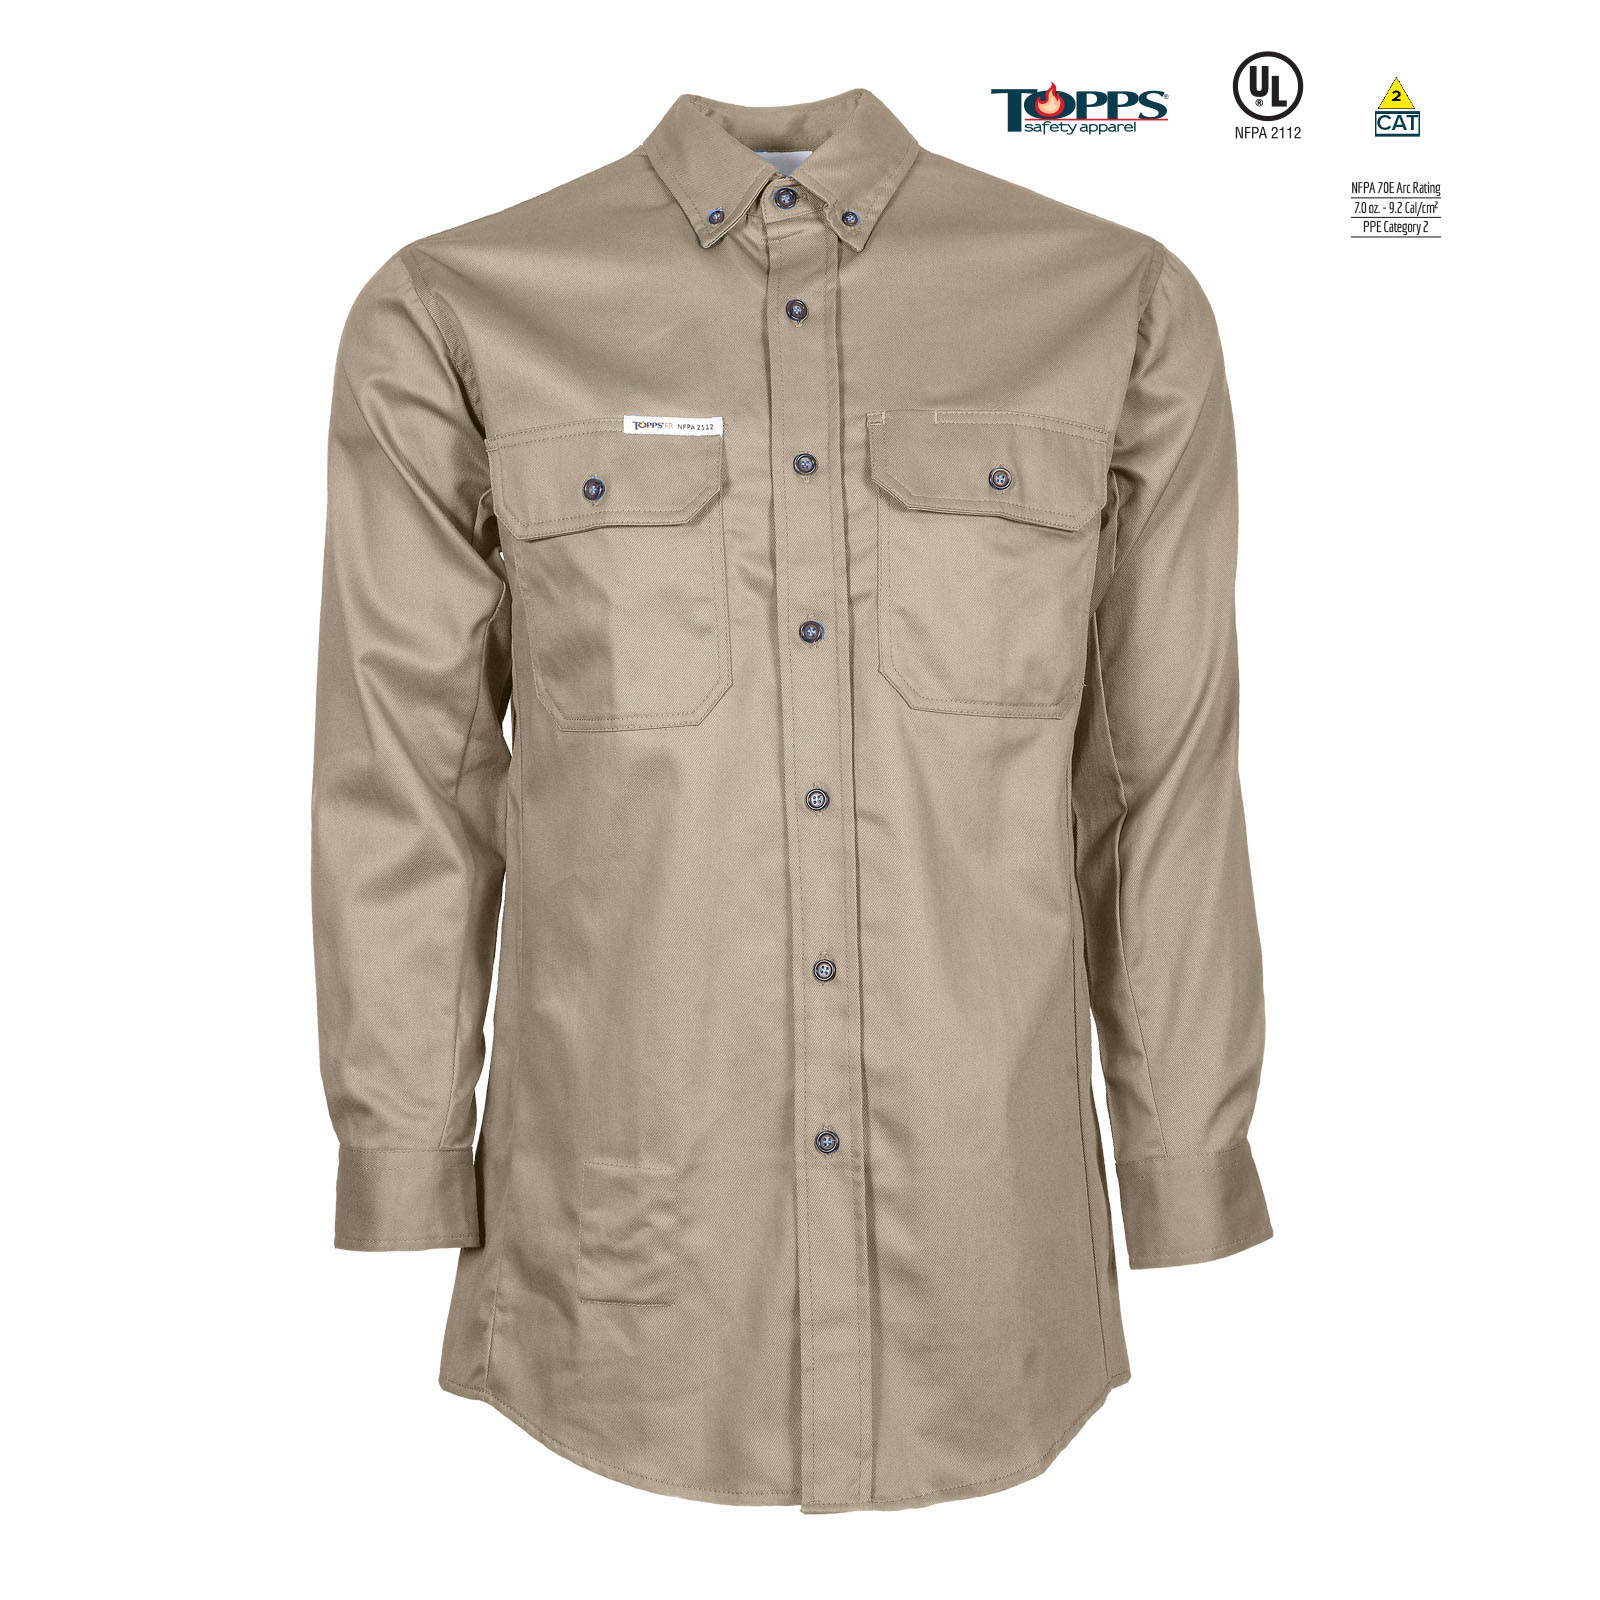 PEAK FR 88/12 Cotton/Nylon Blend Long Sleeve Flame Resistant Button-Front Shirt-